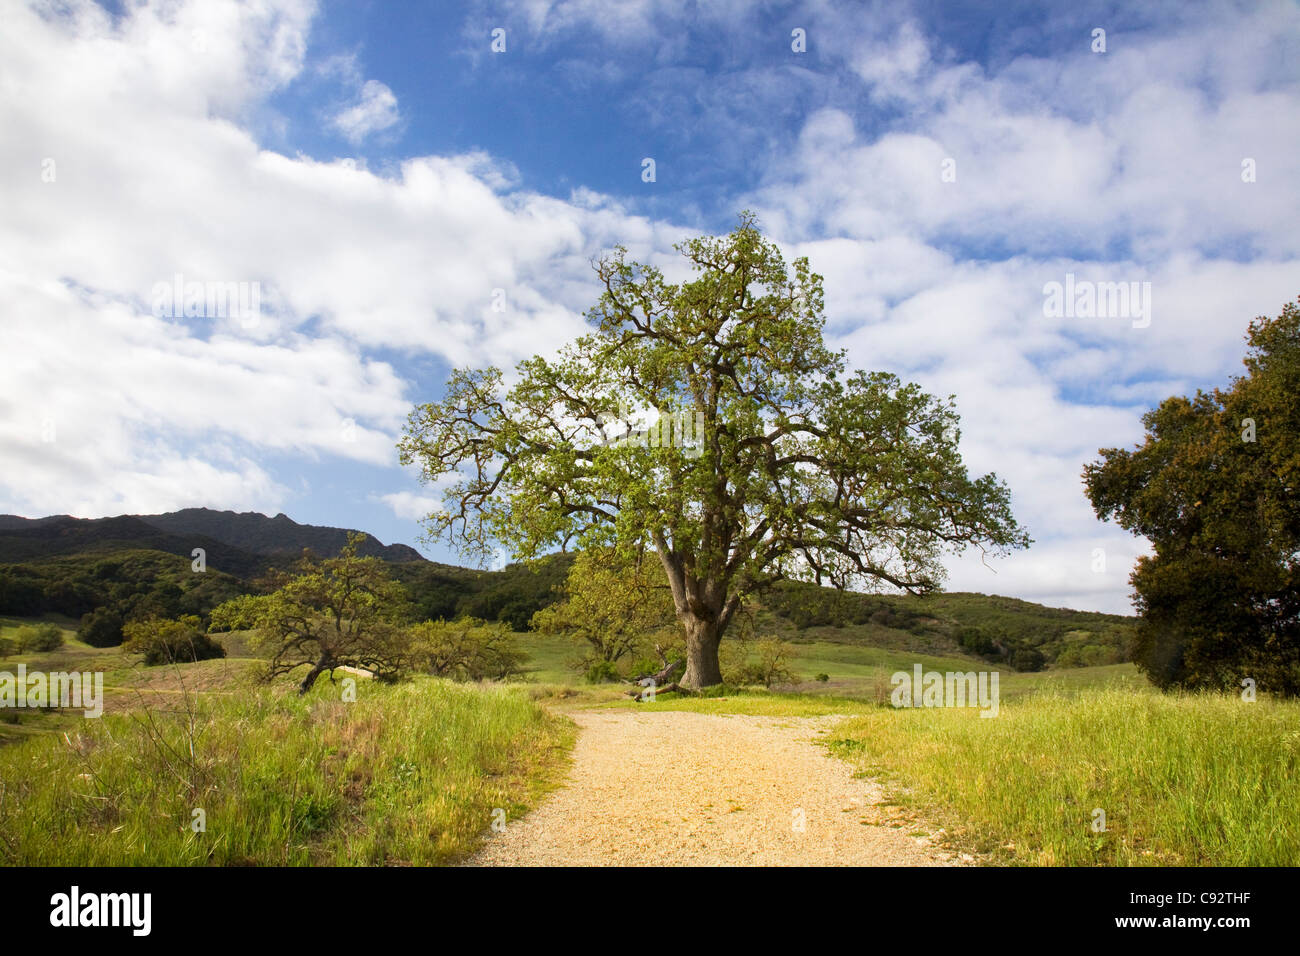 CALIFORNIA - Oak tree growing in the Paramount Ranch area of the Santa Monica Mountains National Recreation Area. - Stock Image